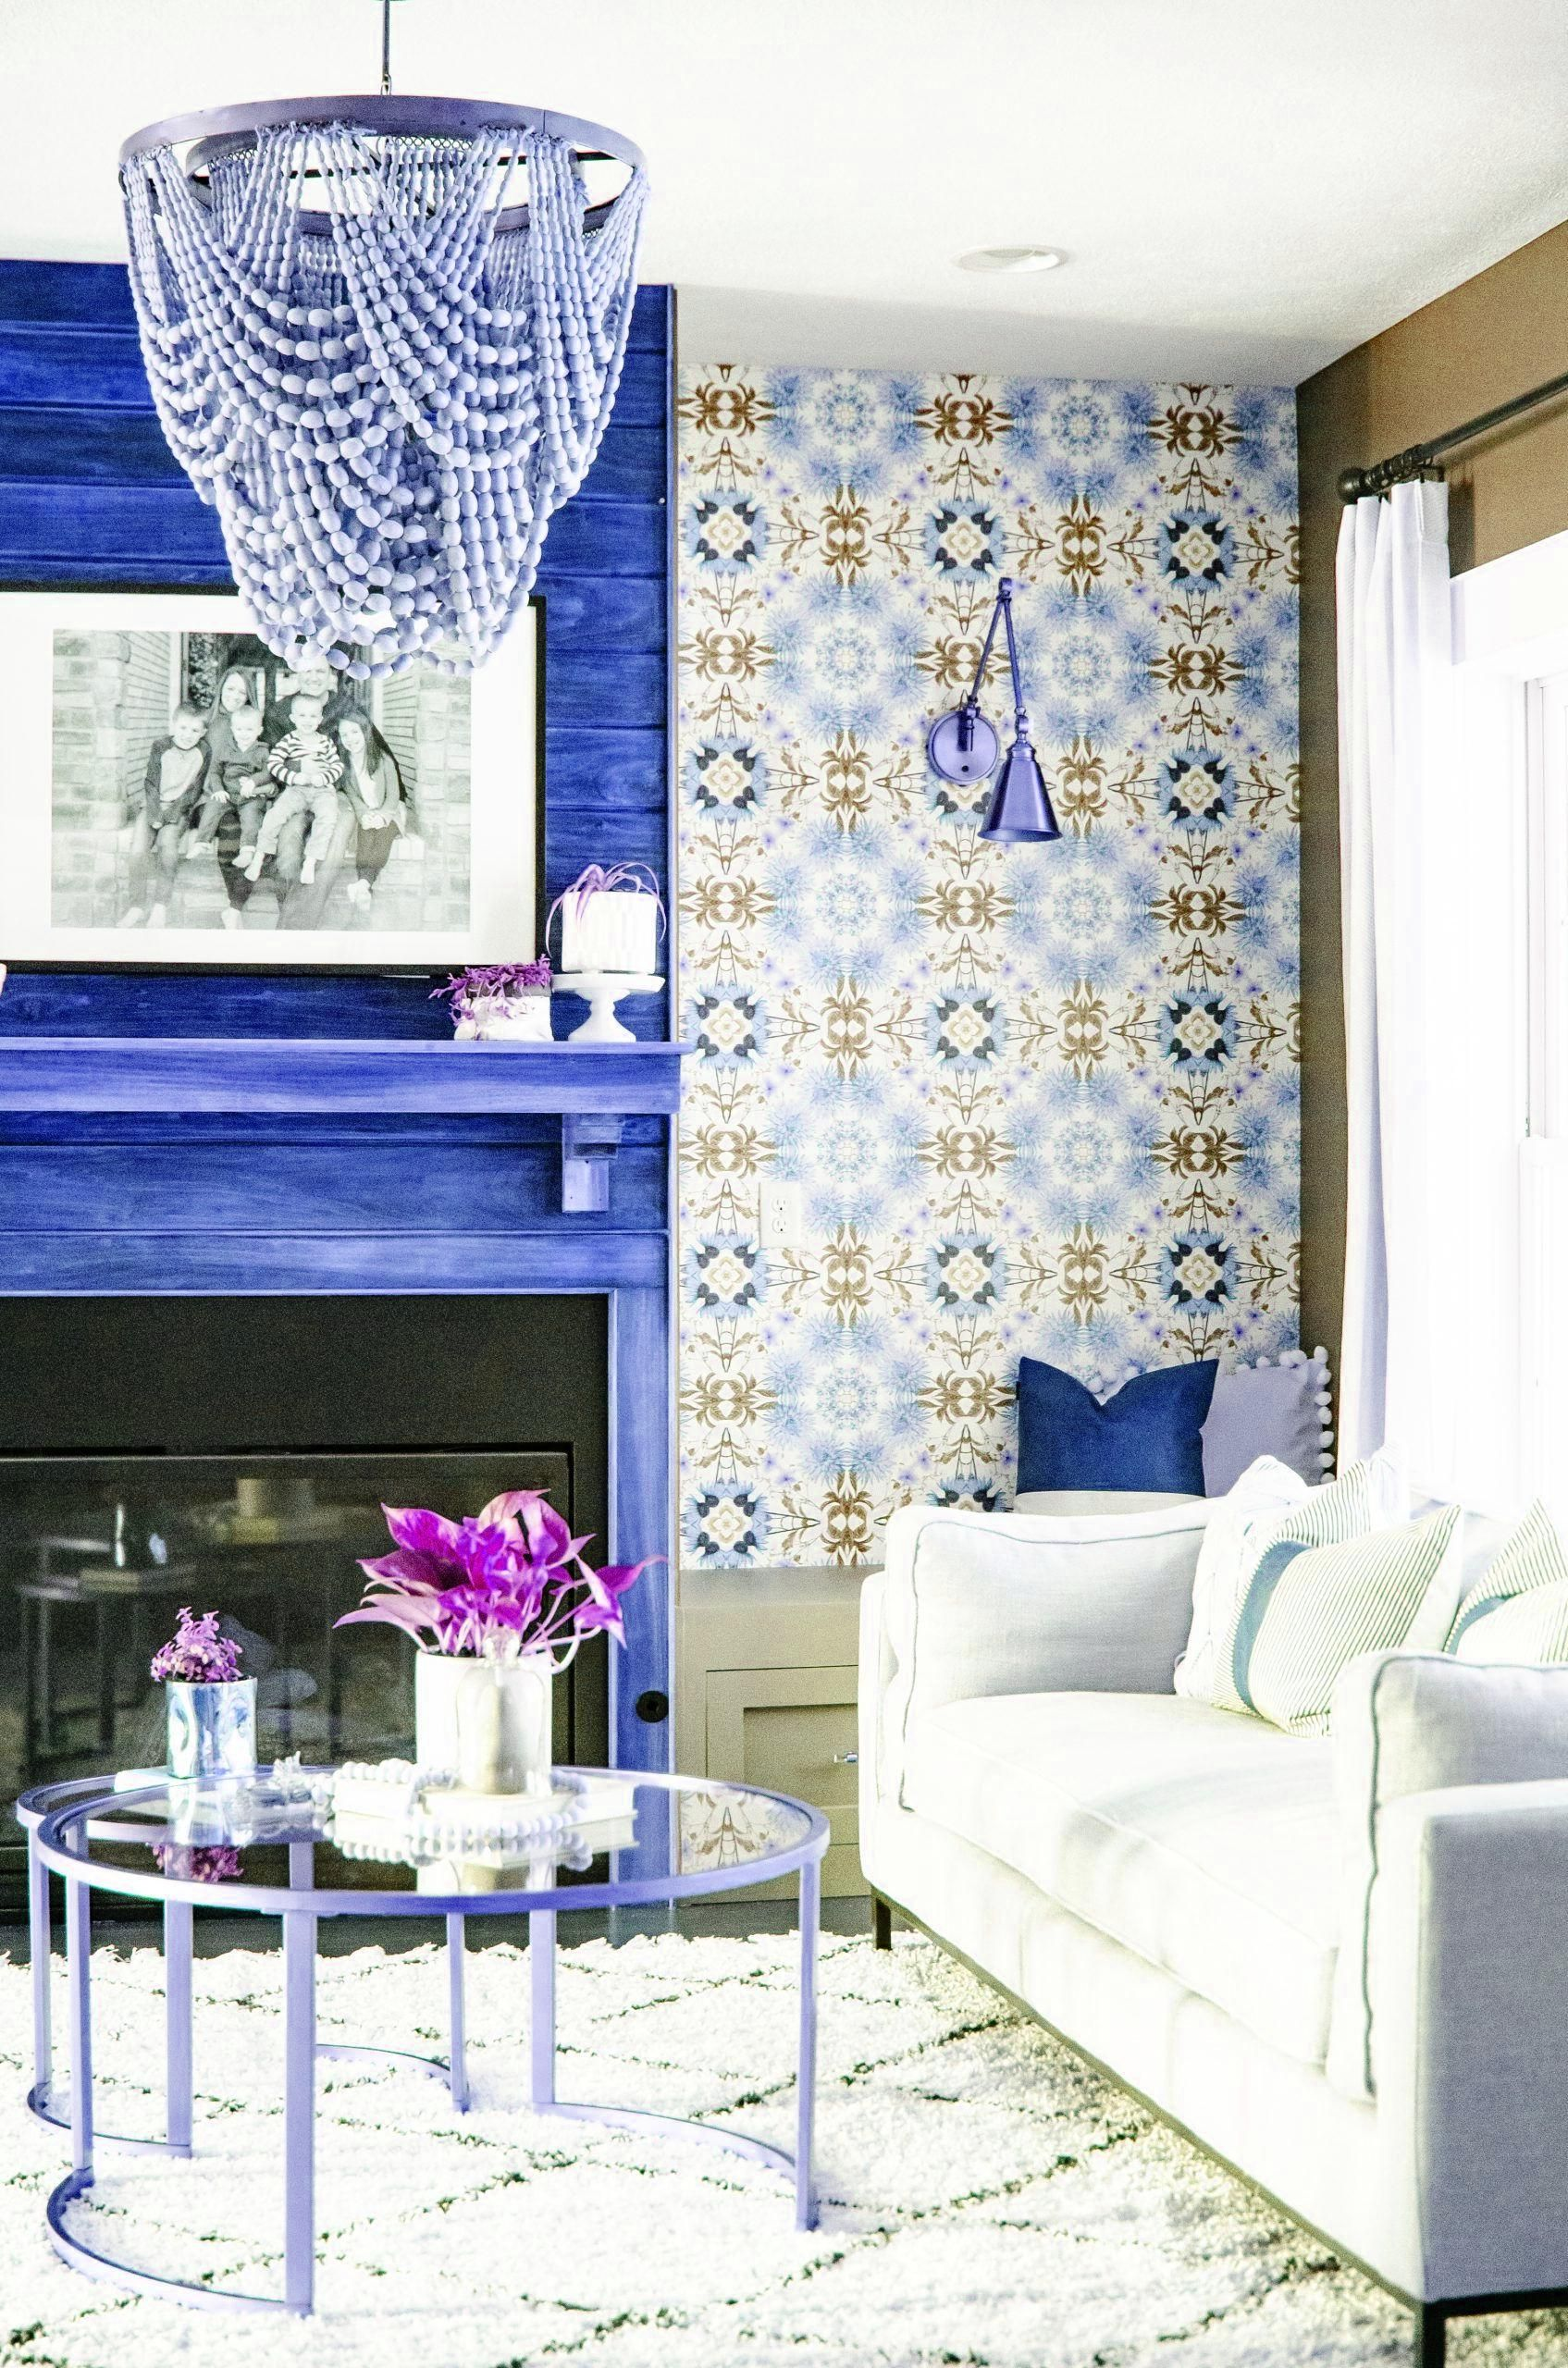 Home Remodel Must Haves Beaded Chandelier and a bold wallpaper accent wall make a statement in this modern boho inspired living room. Click link for sources and before & after photos. #sherwinwilliamspaint #roomdecor.Home Remodel Must Haves  Beaded Chandelier and a bold wallpaper accent wall make a statement in this modern boho inspired living room. Click link for sources and before & after photos. #sherwinwilliamspaint #roomdecor